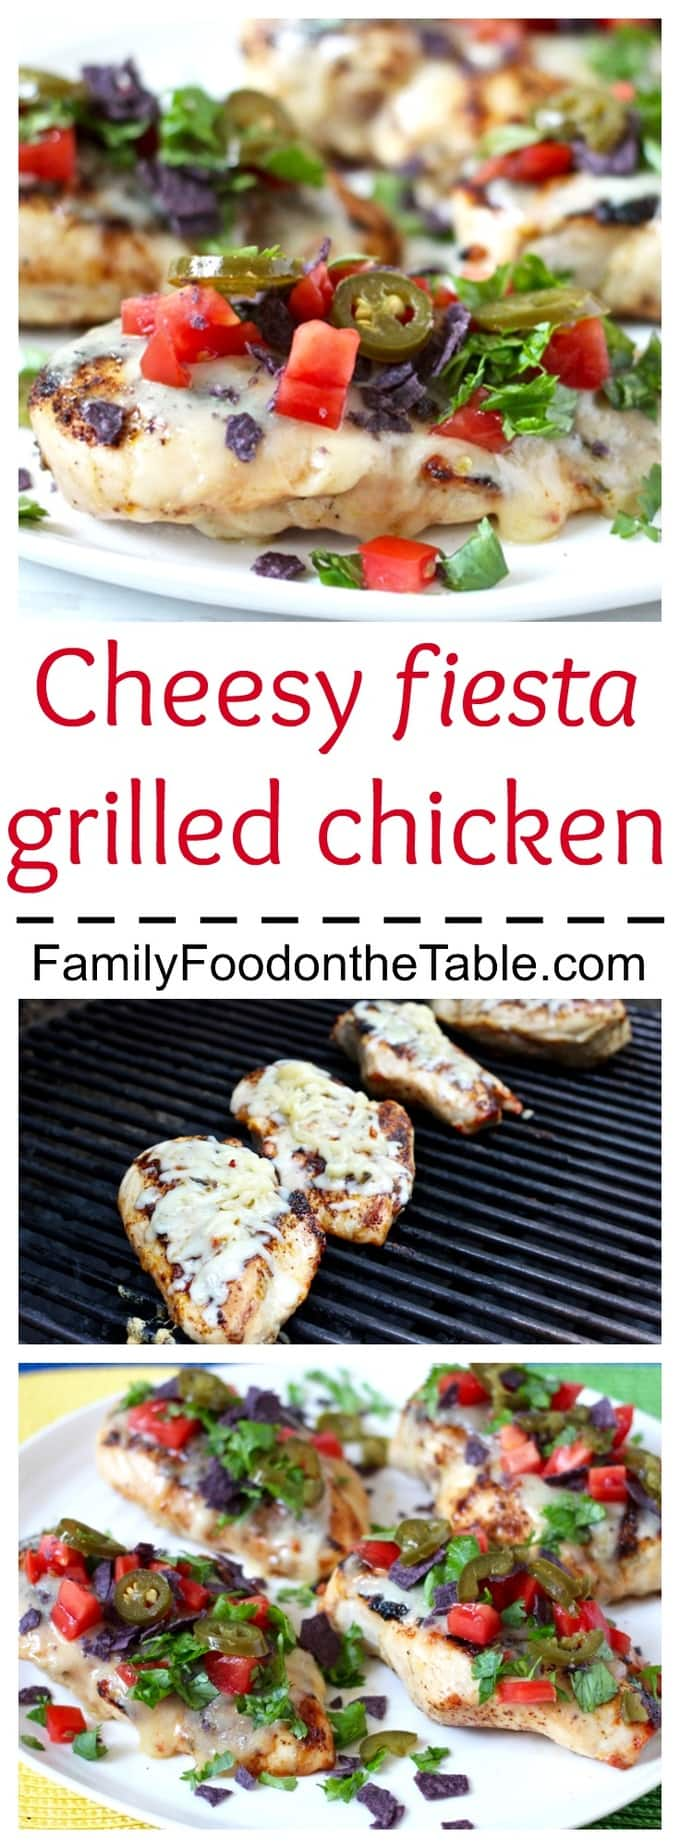 This fun, flavorful fiesta grilled chicken can be dressed up and used in so many ways! | FamilyFoodontheTable.com